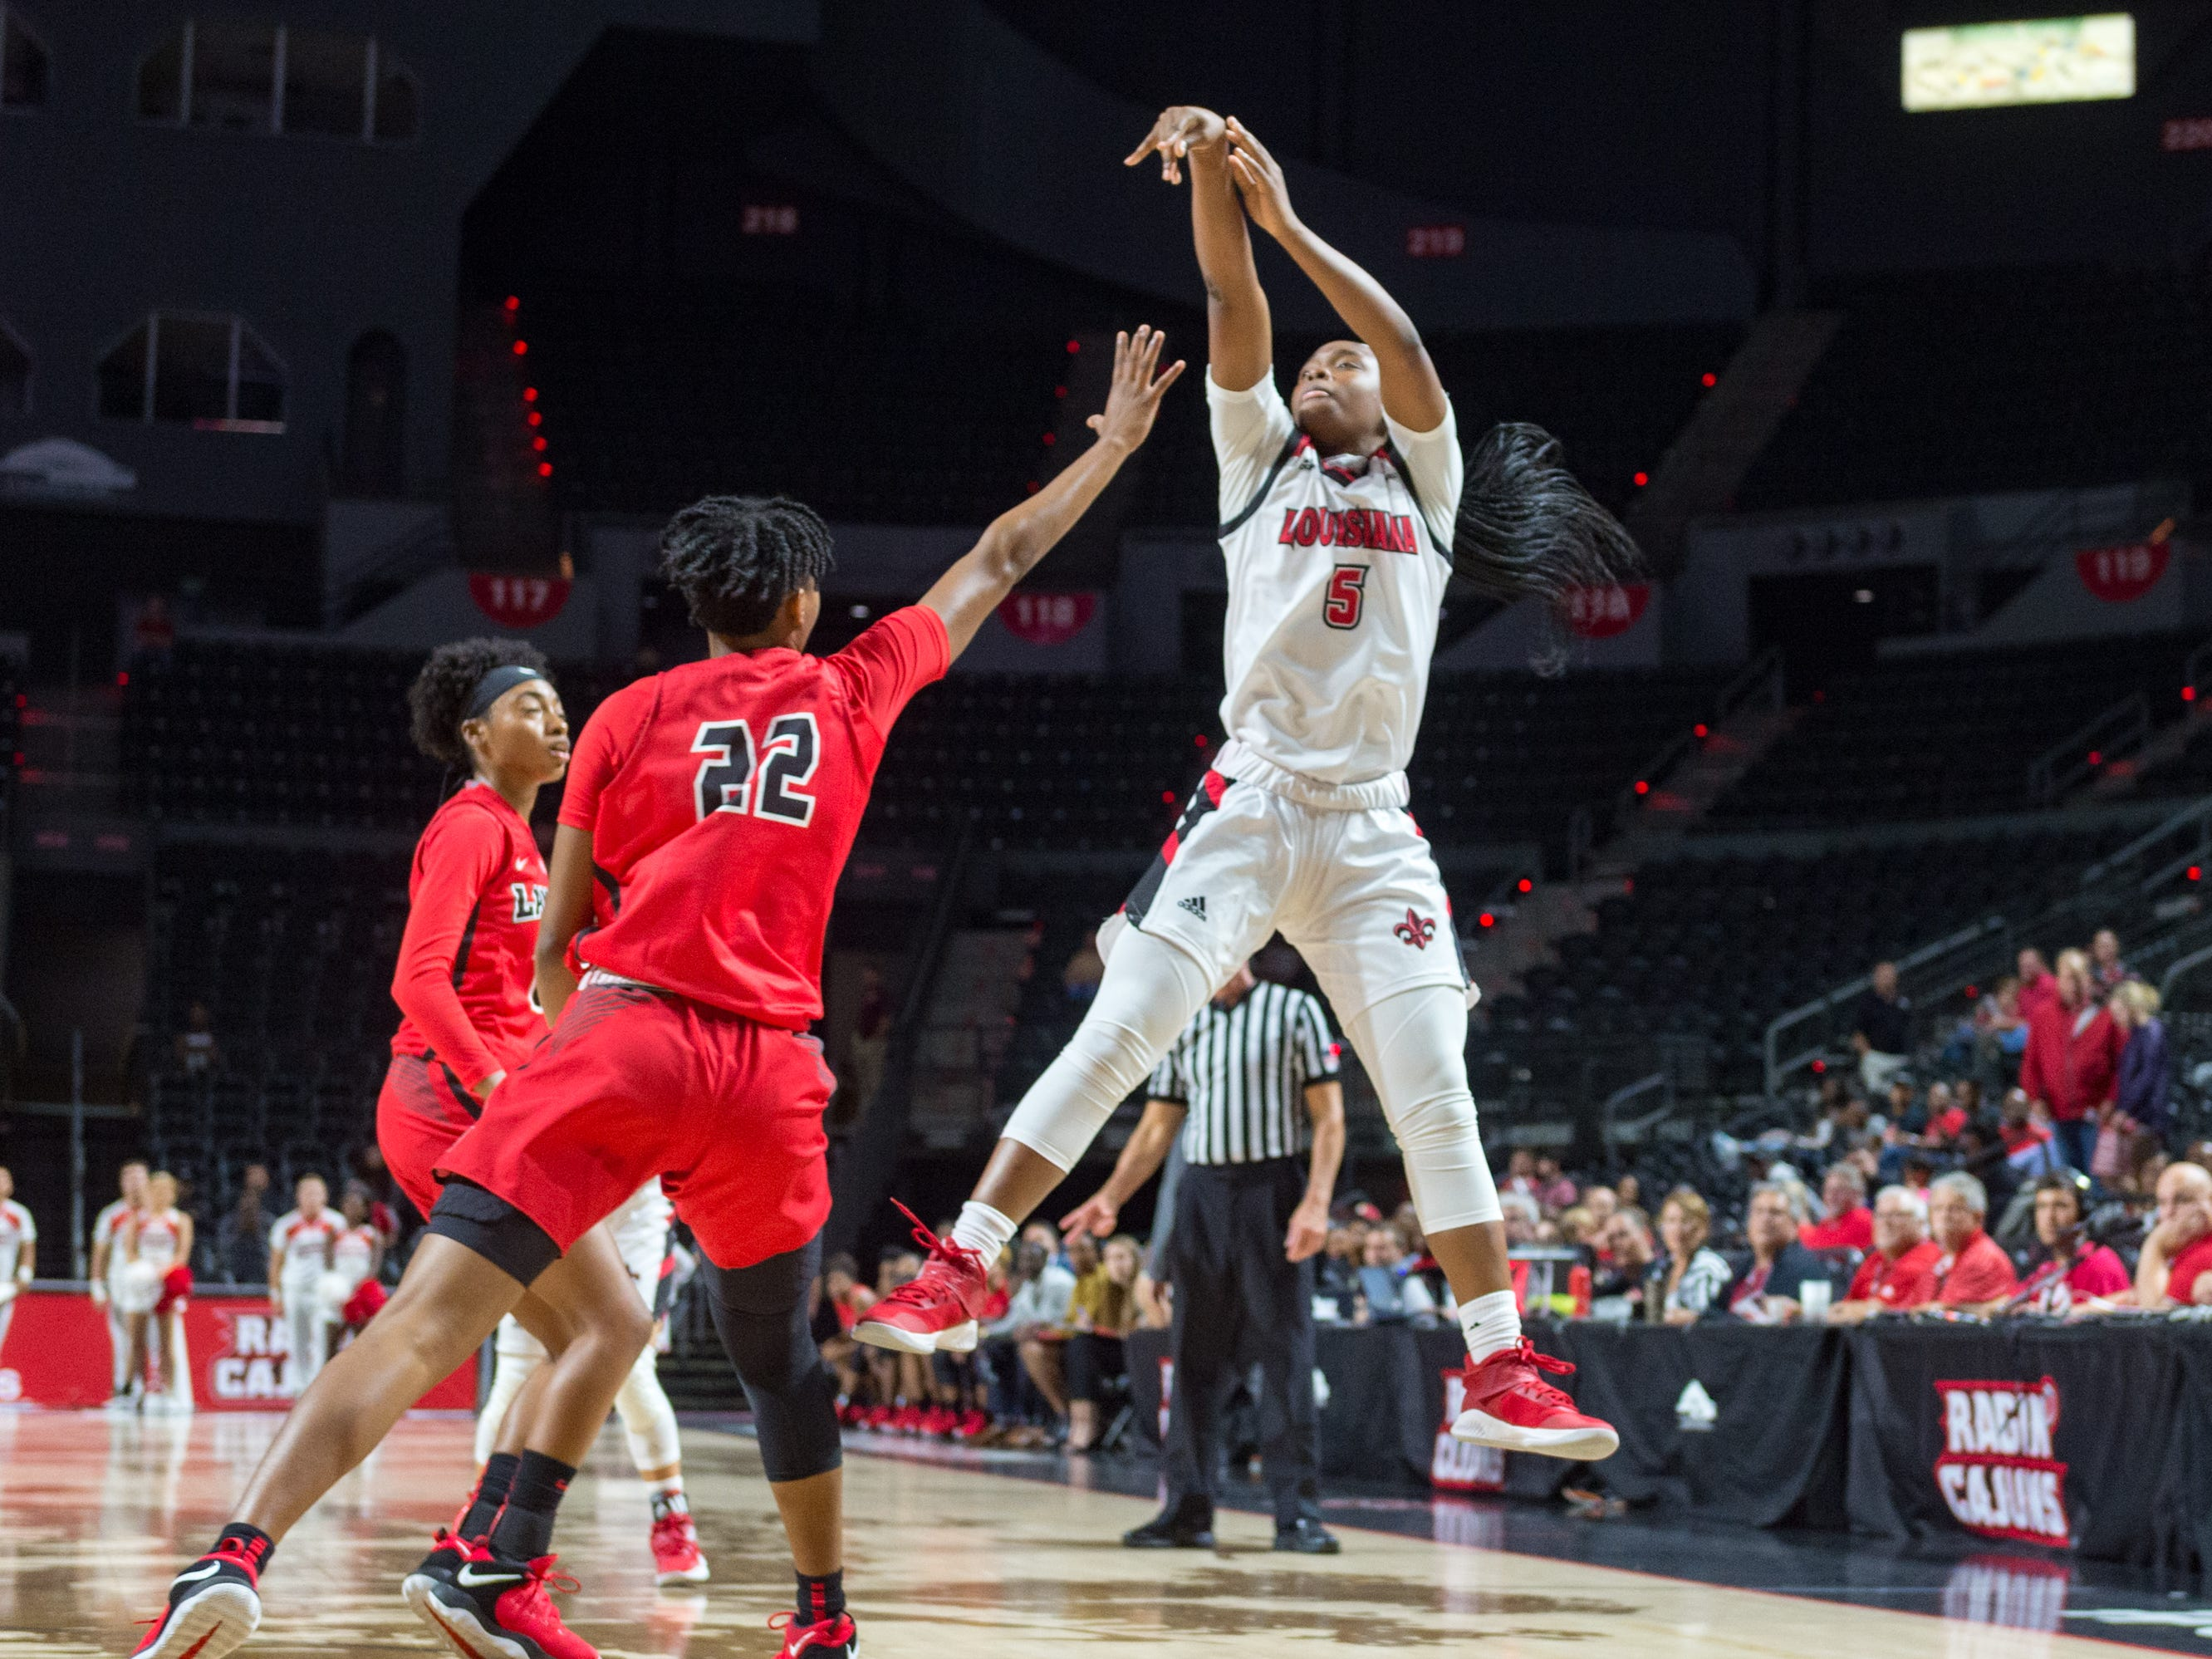 Jamyra Mathis shoots a long two point shot as the Cajuns take on Lamar in Womens Basketball. Tuesday, Nov. 6, 2018.